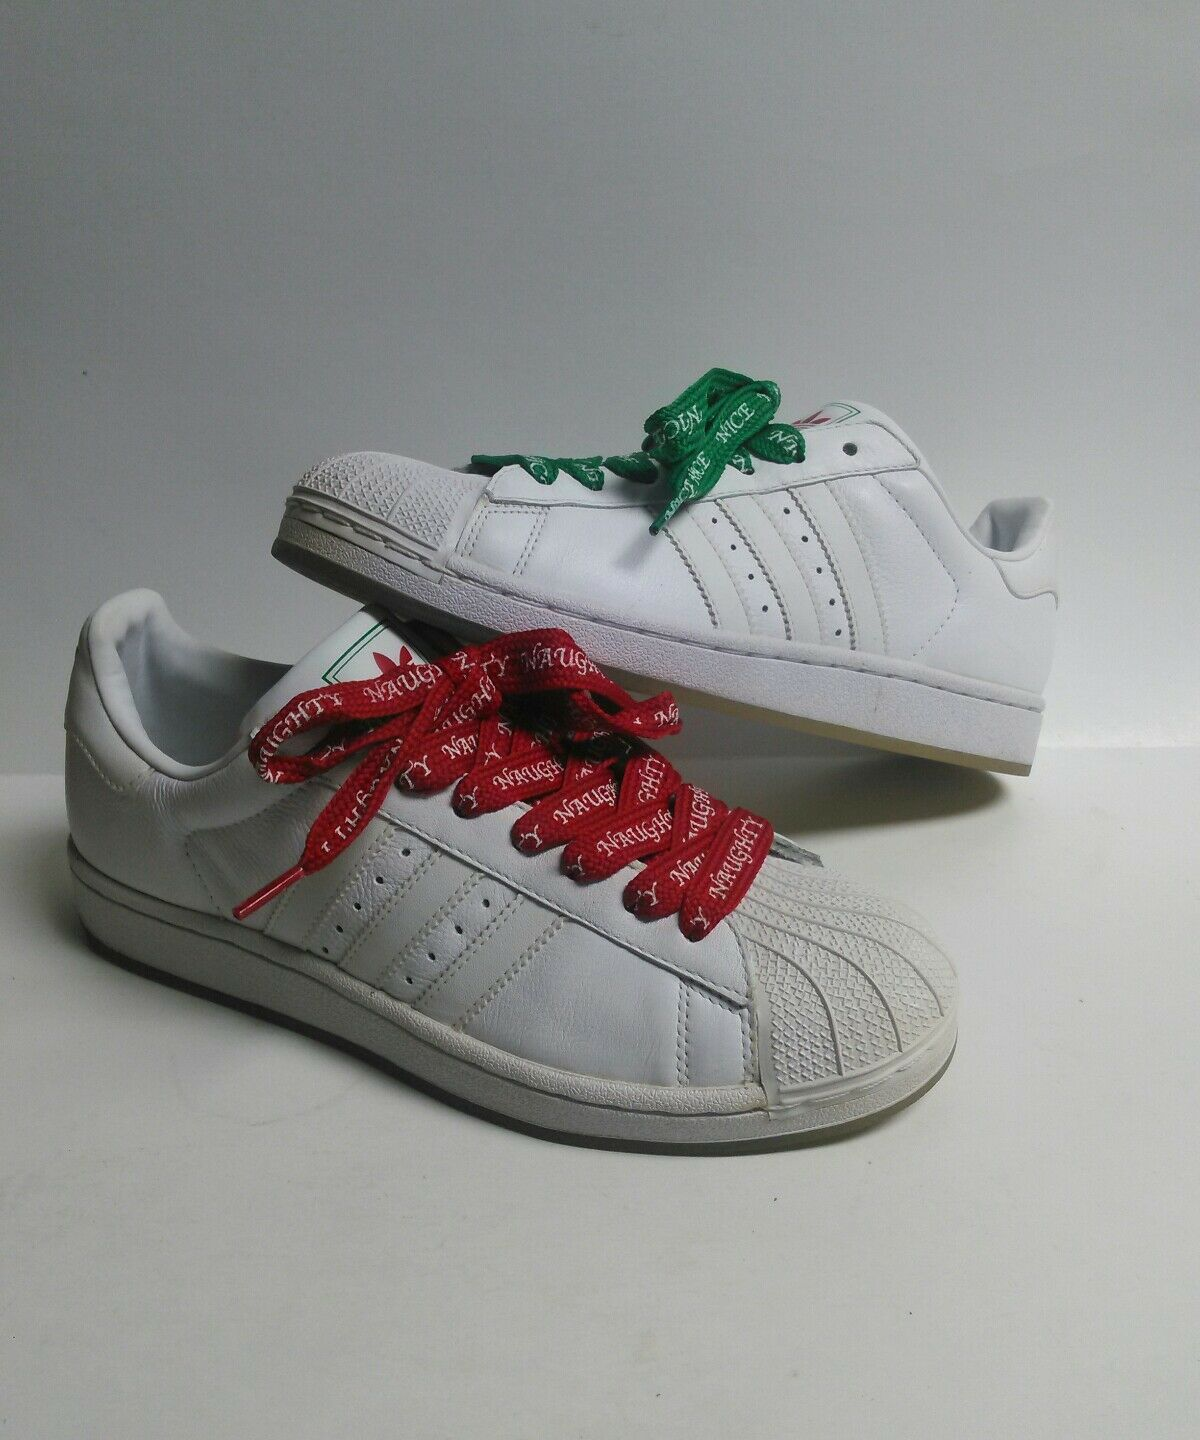 4ed722b88 ADIDAS SUPERSTAR II 2 CHRISTMAS XMAS SZ 8 1 1 1 2 NAUGHTY AND NICE WHITE